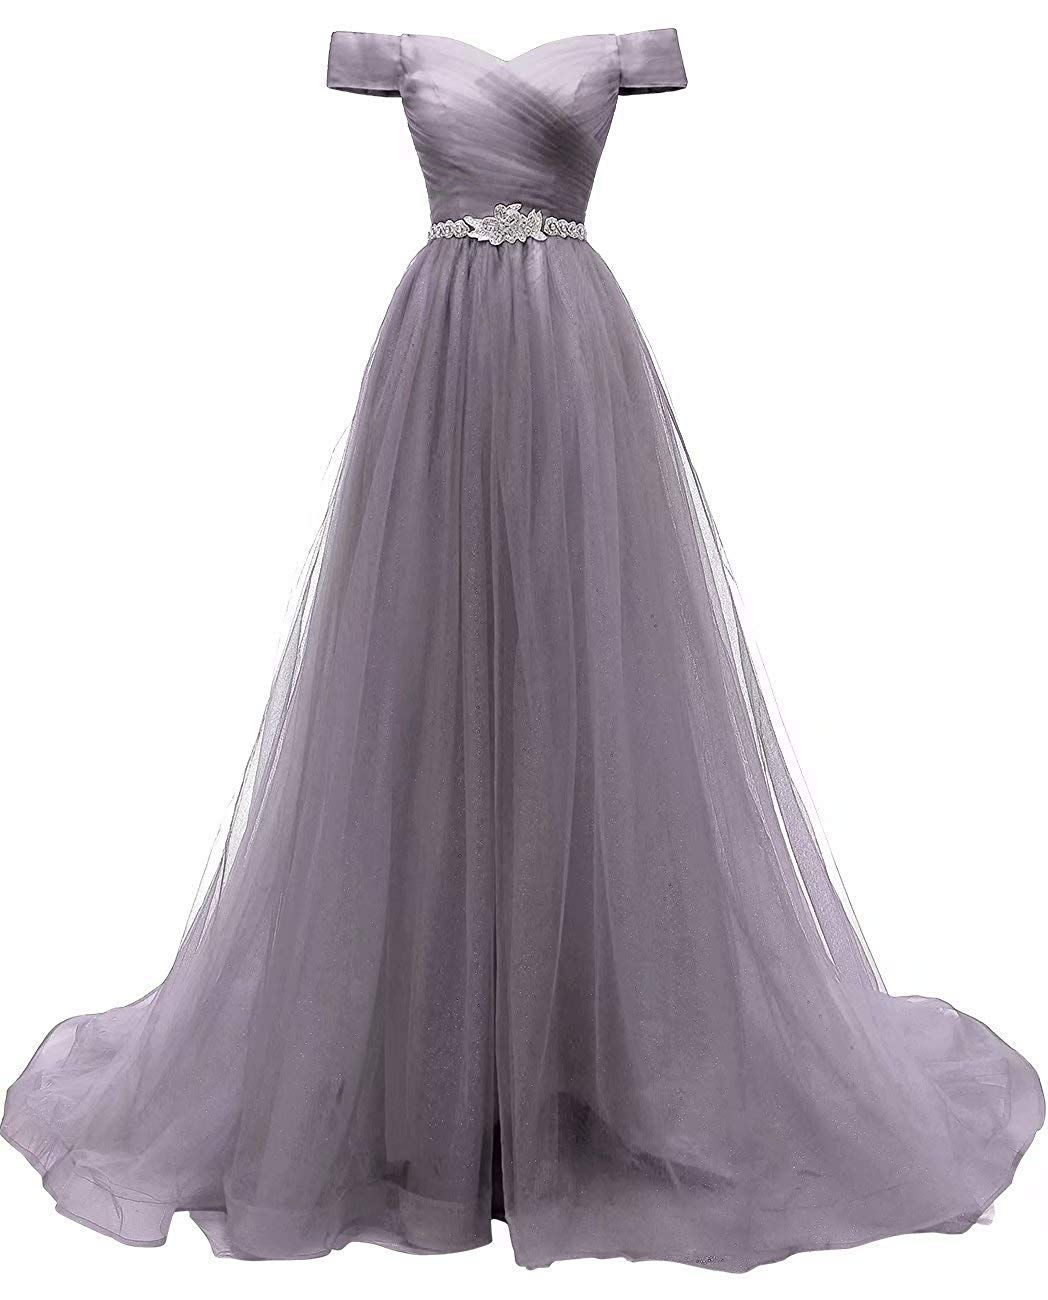 30a24c2e71 ᴥ100% Handcrafted,New&High Quality,made of tulle,sweetheart,beaded,soft  material,good feeling,popular color,elegant,fashio…   ShOpE PaRtY&PrOmE  DrEsSeS in ...